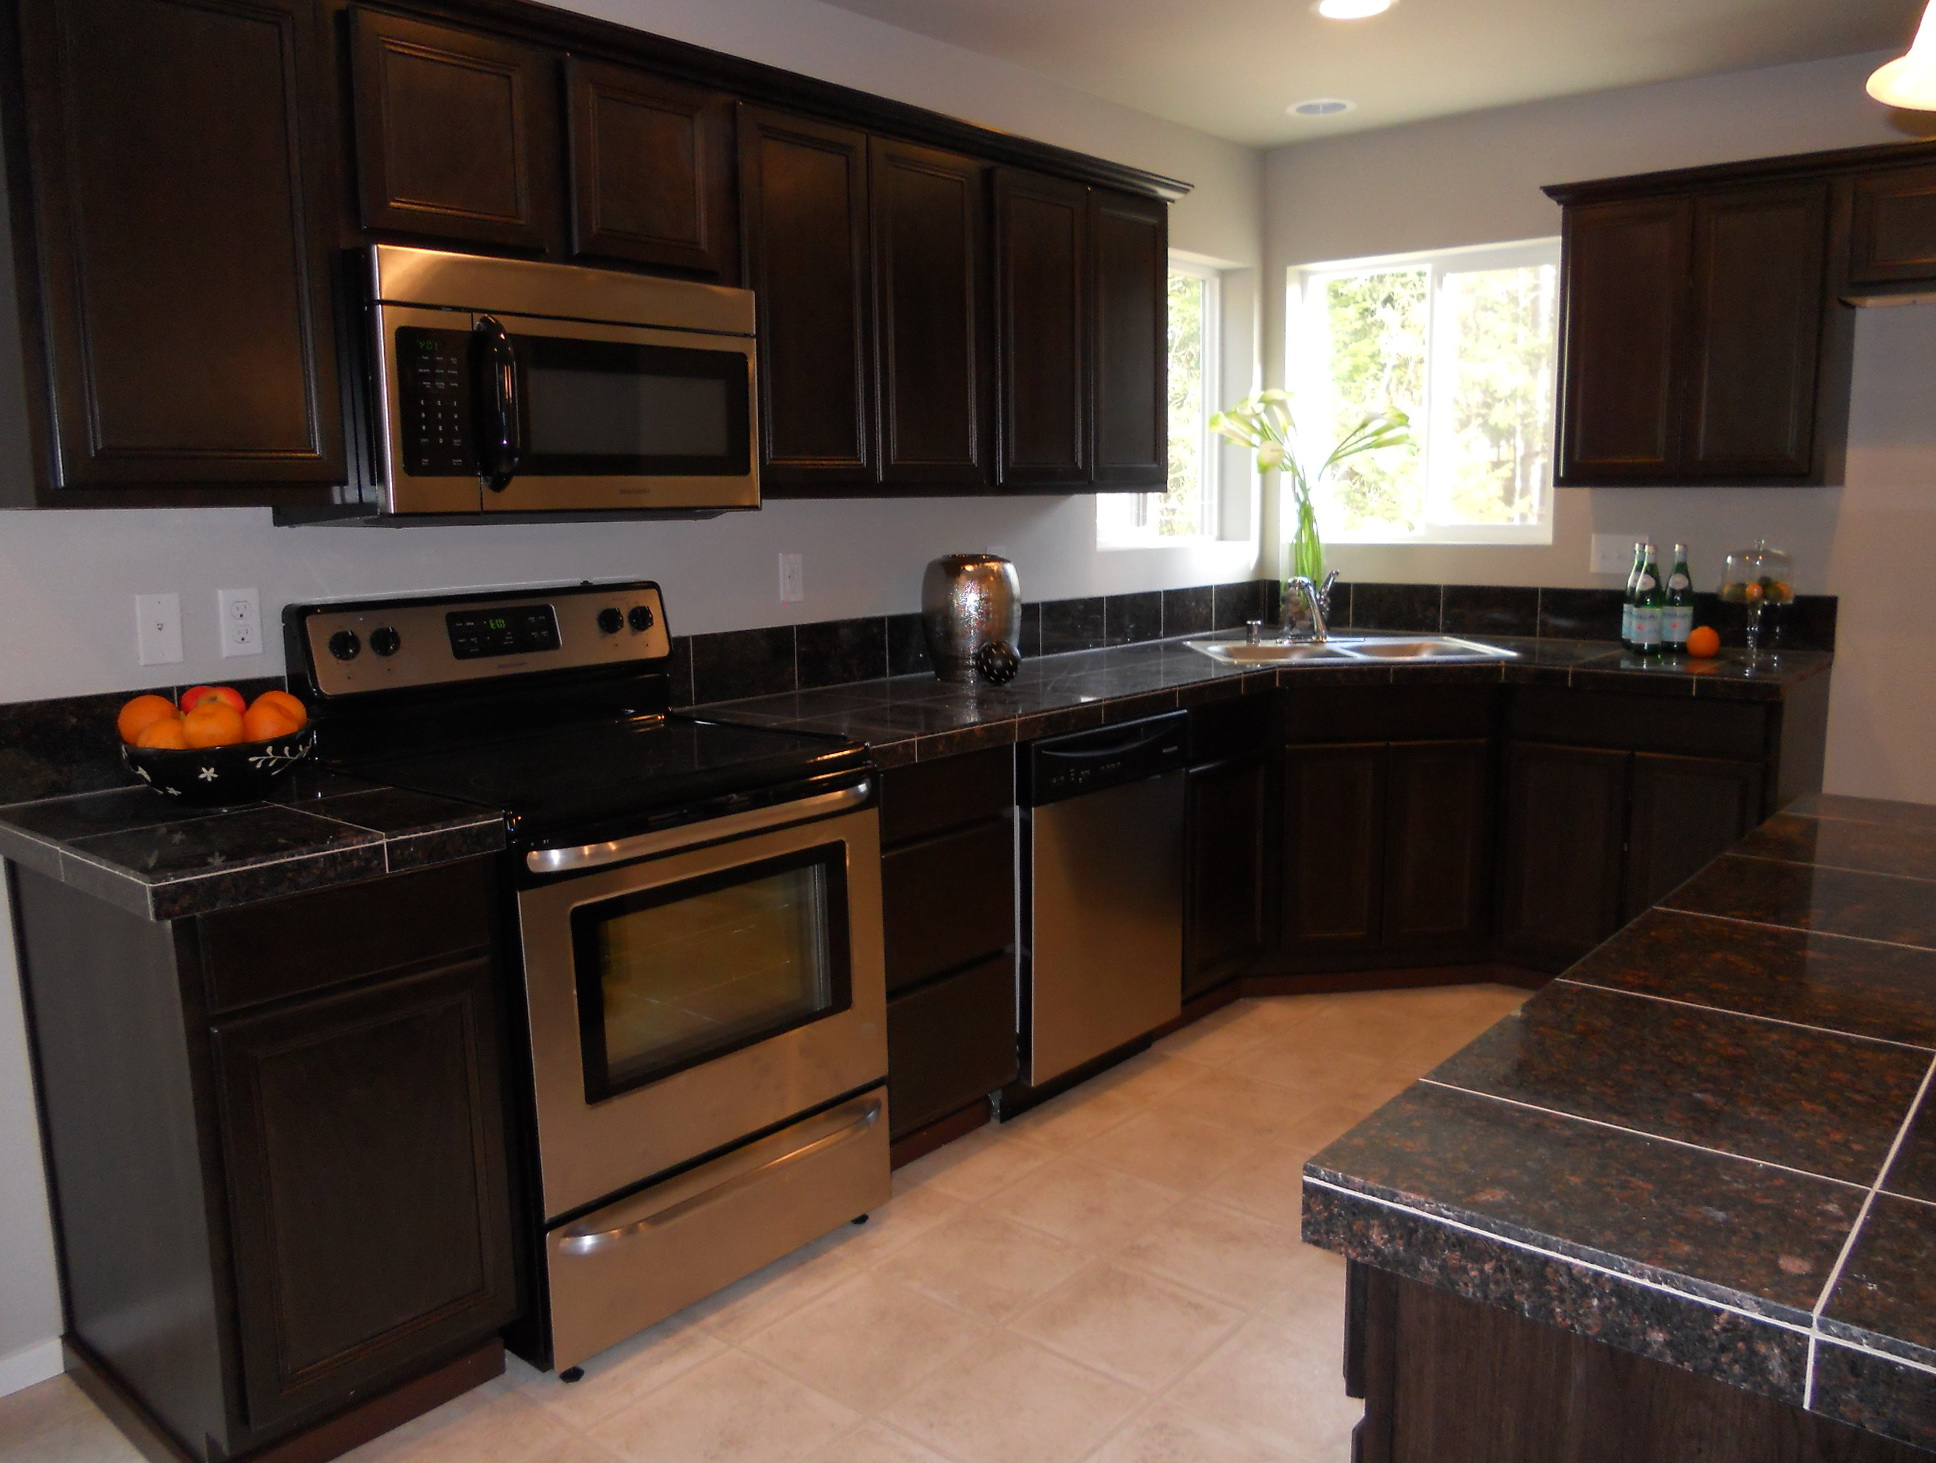 Cabinet Colors With Black Countertops Kitchen Cabinet Colors With Dark Countertops Kitchen